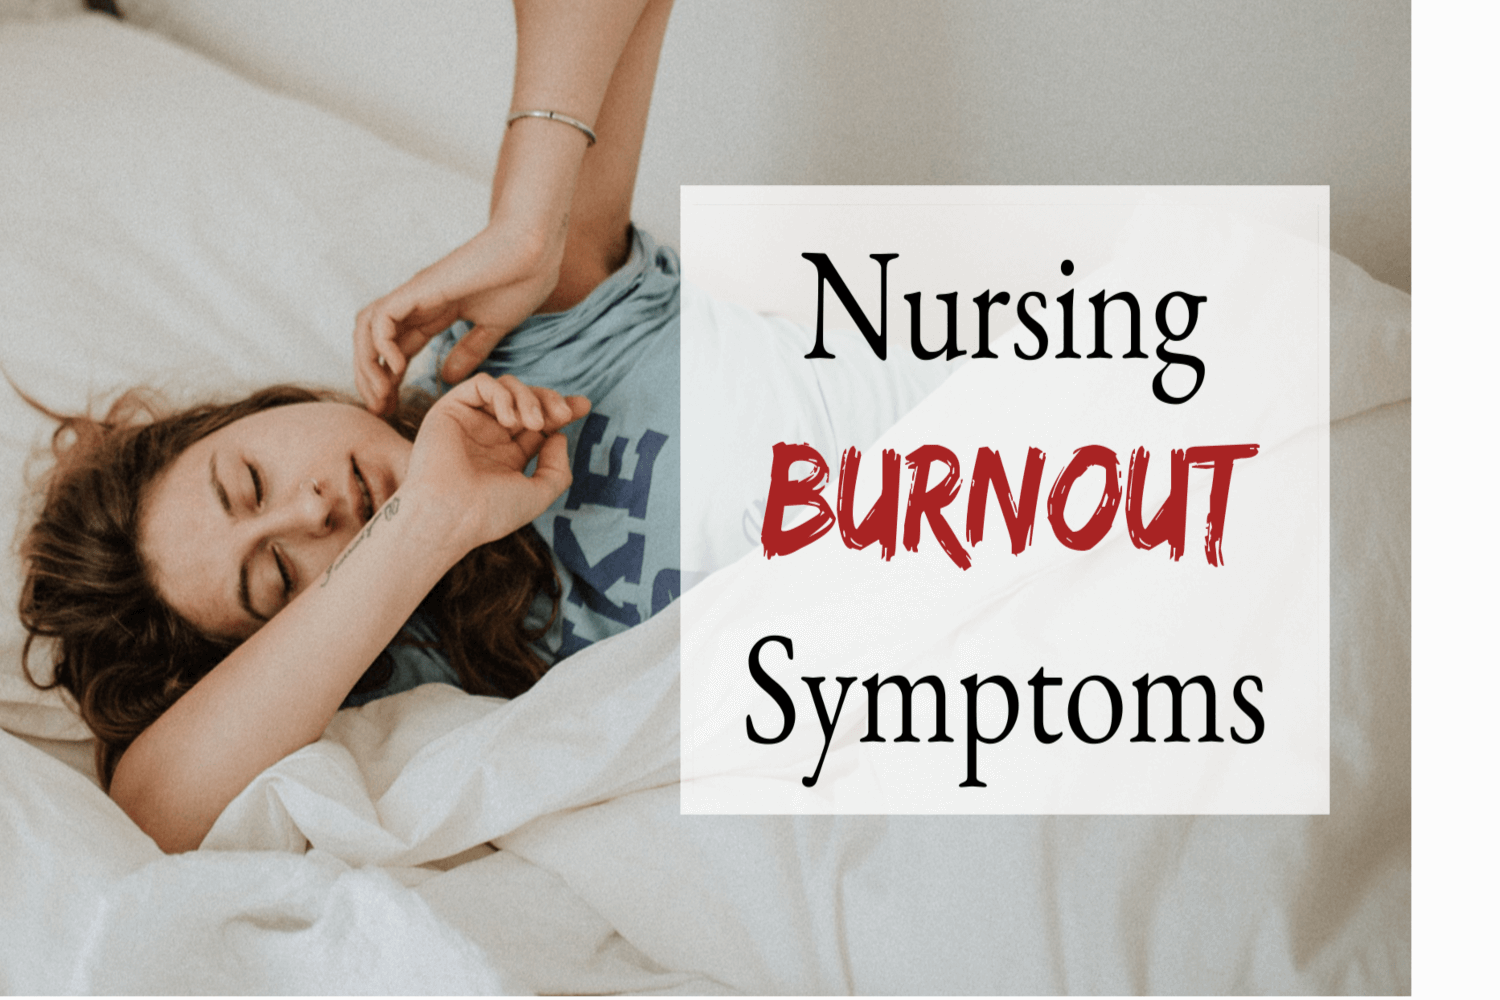 Nurse Burnout Symptoms To Watch Out For